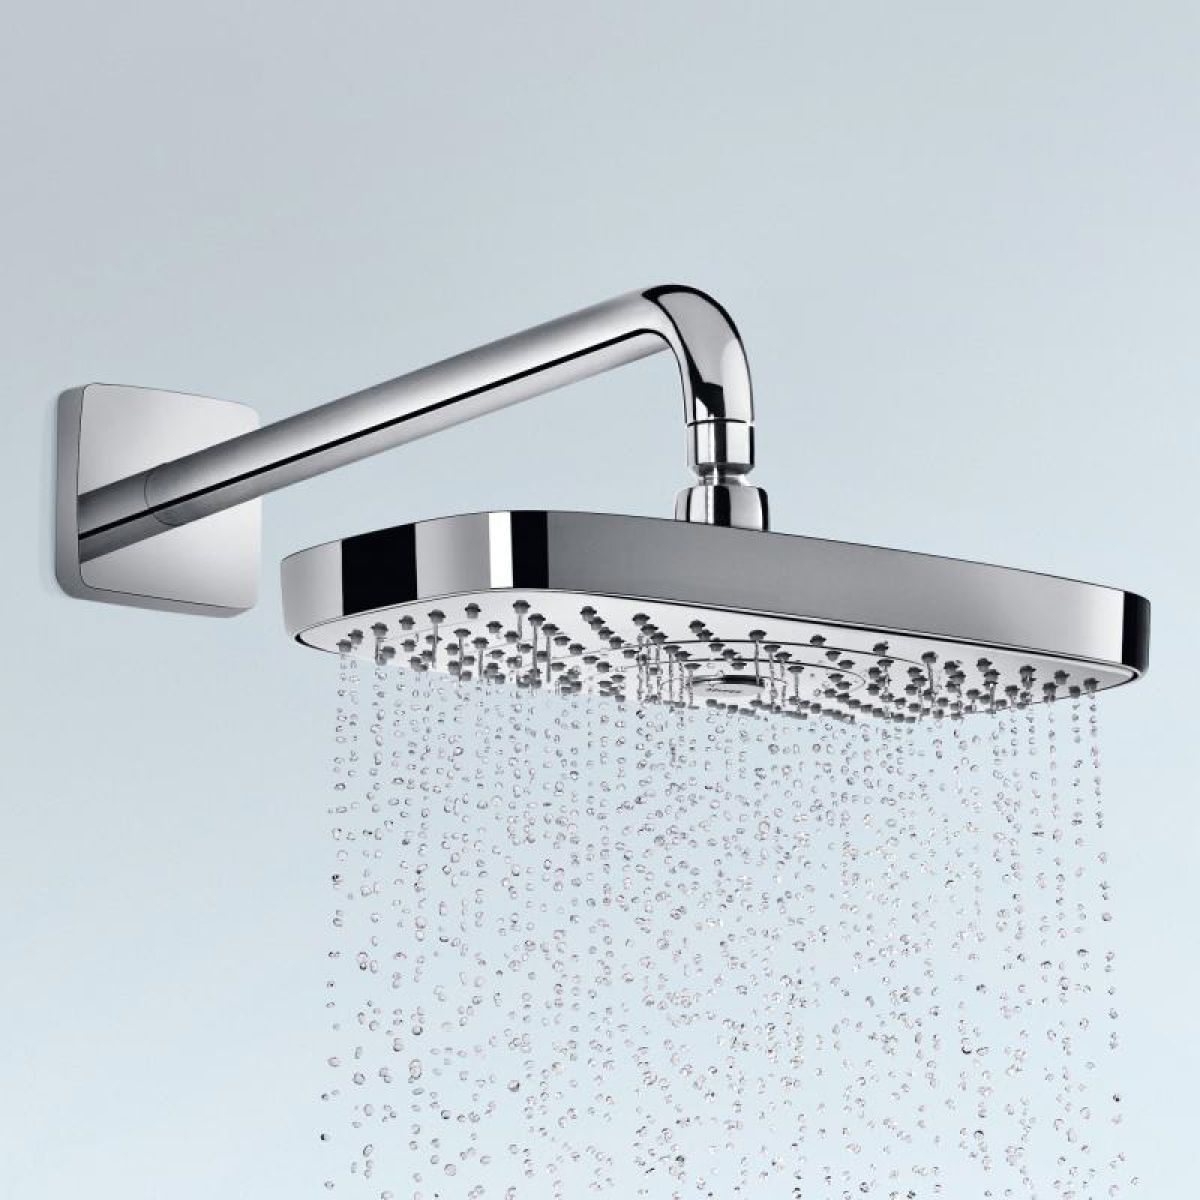 Hansgrohe Select E 300 2 Jet Overhead Shower & Arm Wall Mounted